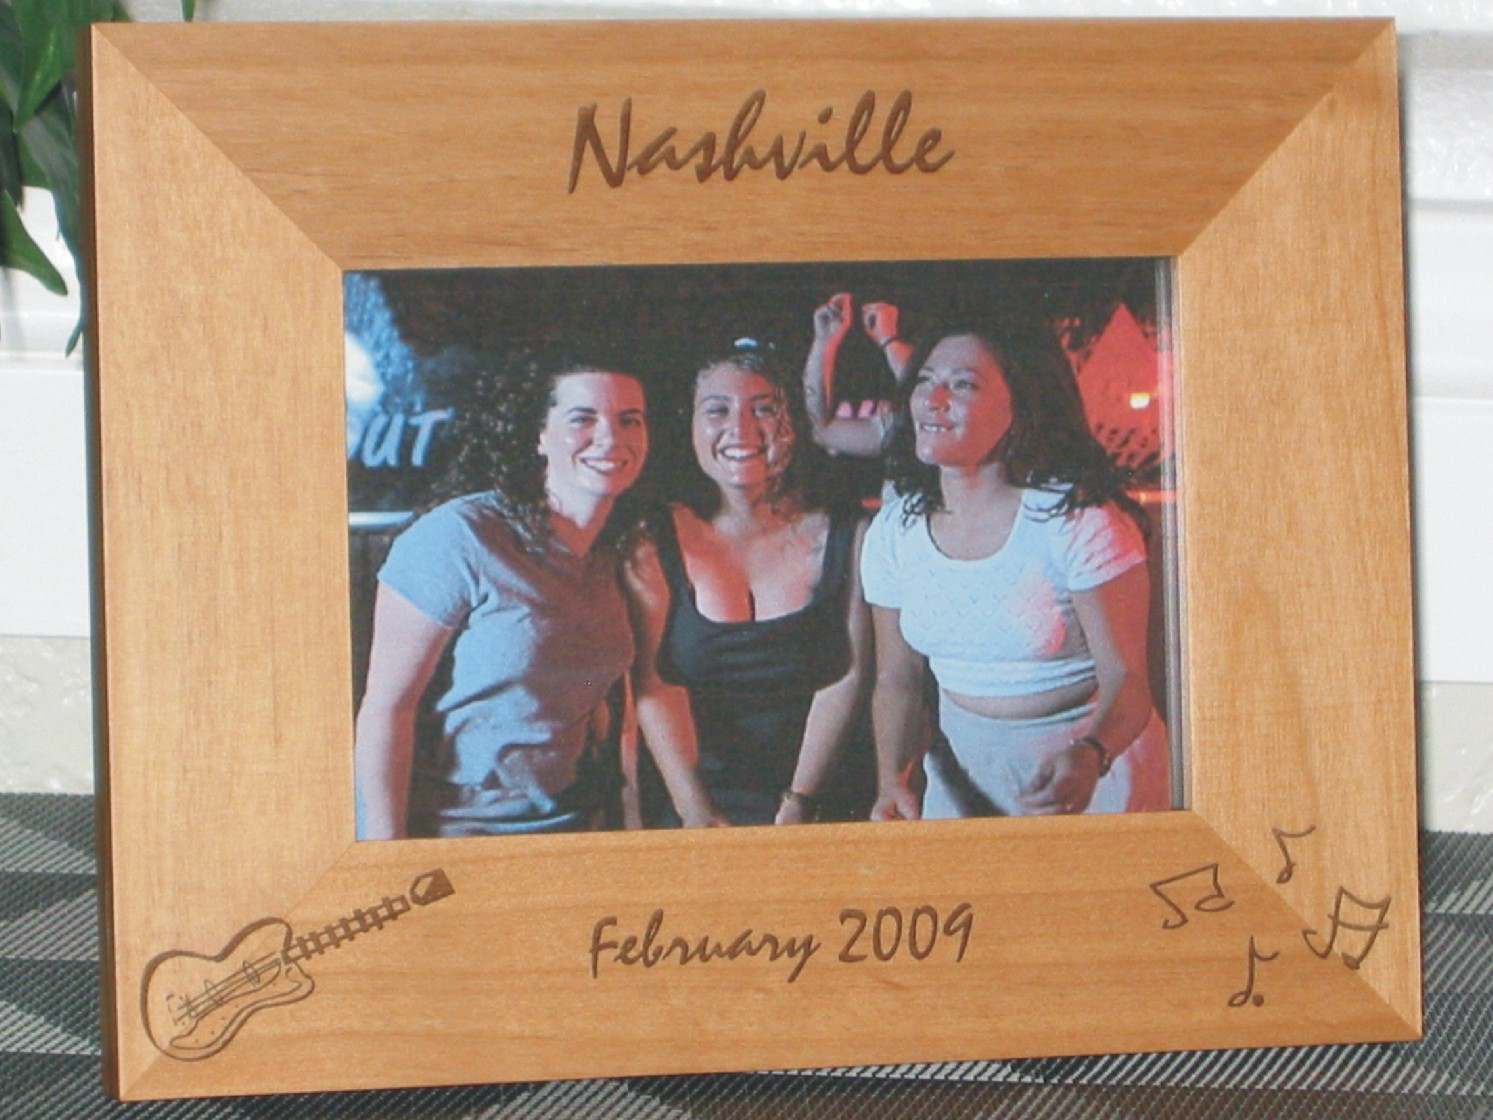 Nashville picture frame personalized frame laser engraved nashville picture frame personalized frame laser engraved guitar music notes jeuxipadfo Image collections